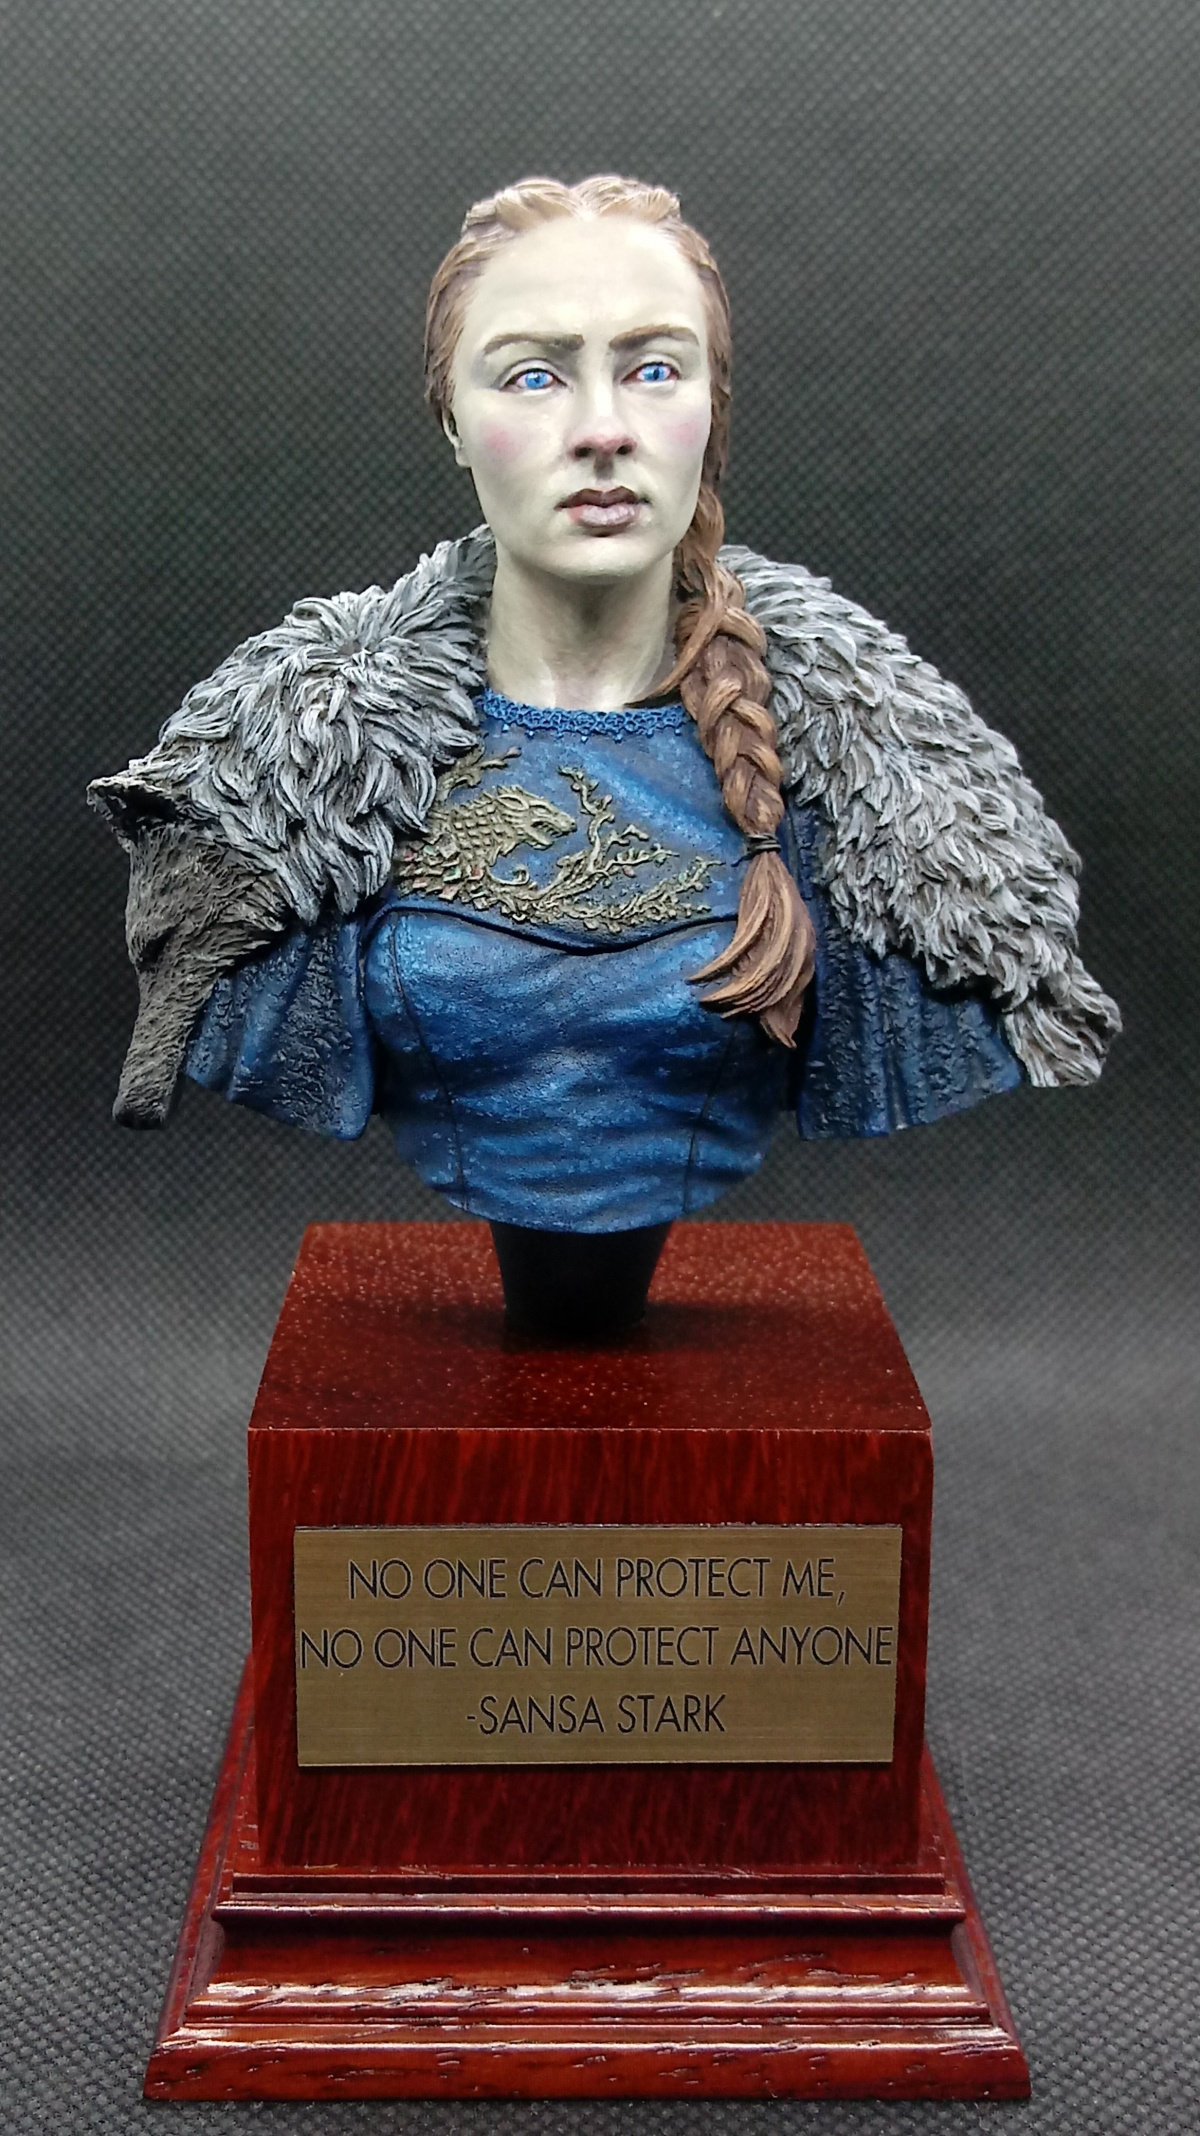 How Much Is A Paint Job >> Sansa Stark - Queen of the North by Dave Szymanik · Putty&Paint